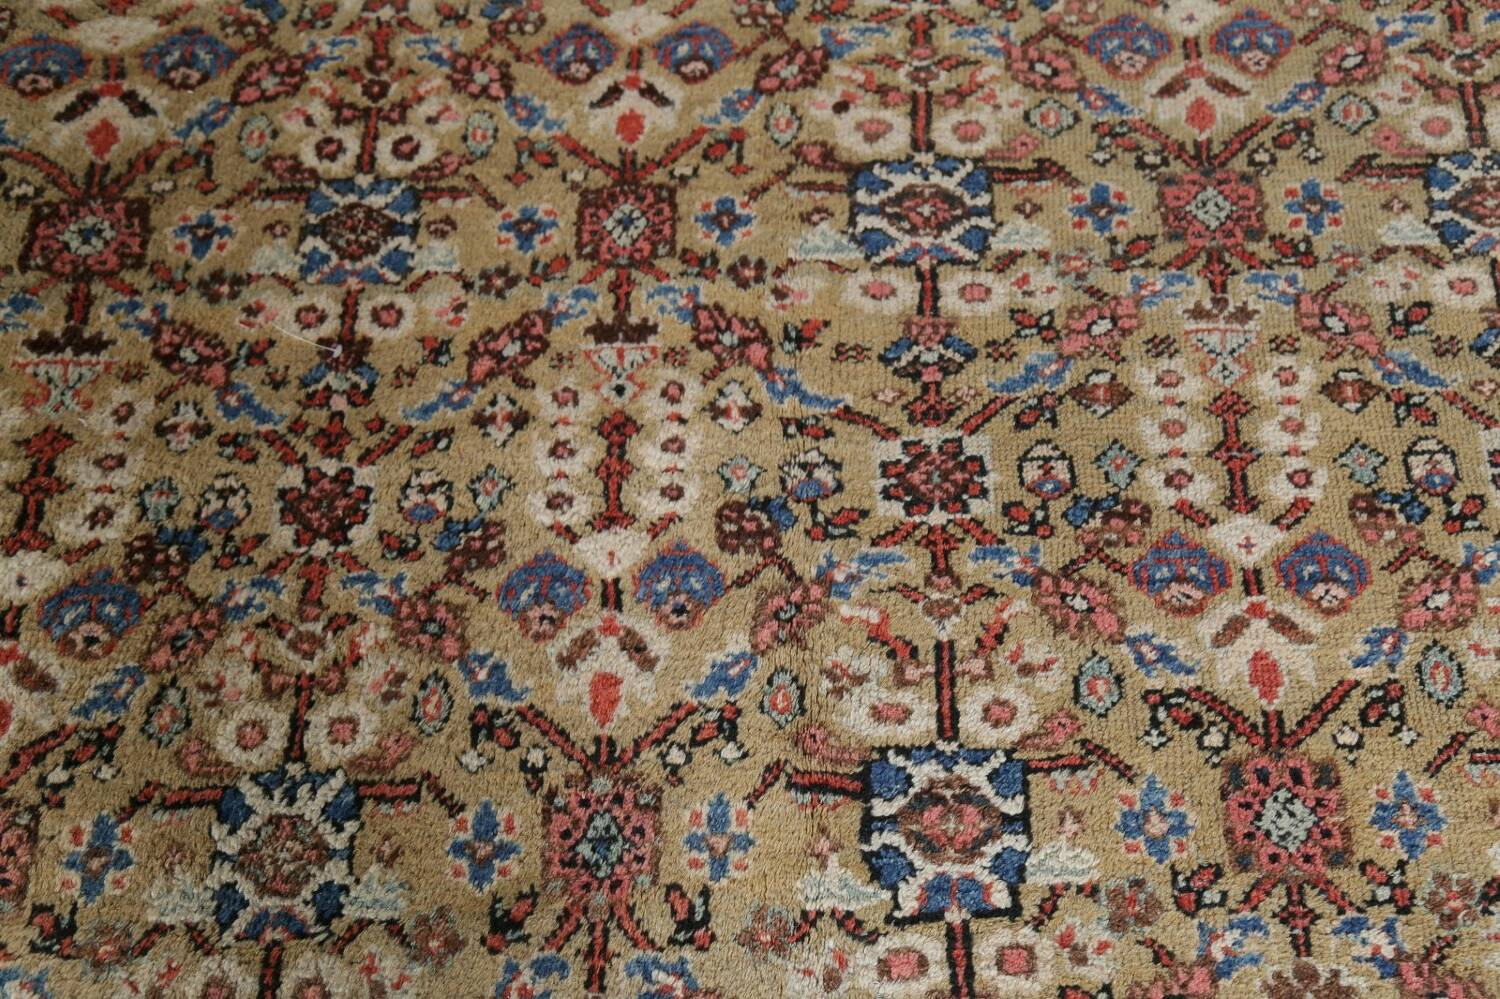 Antique Pre-1900 Sultanabad Persian Rug 13x22 Large image 11